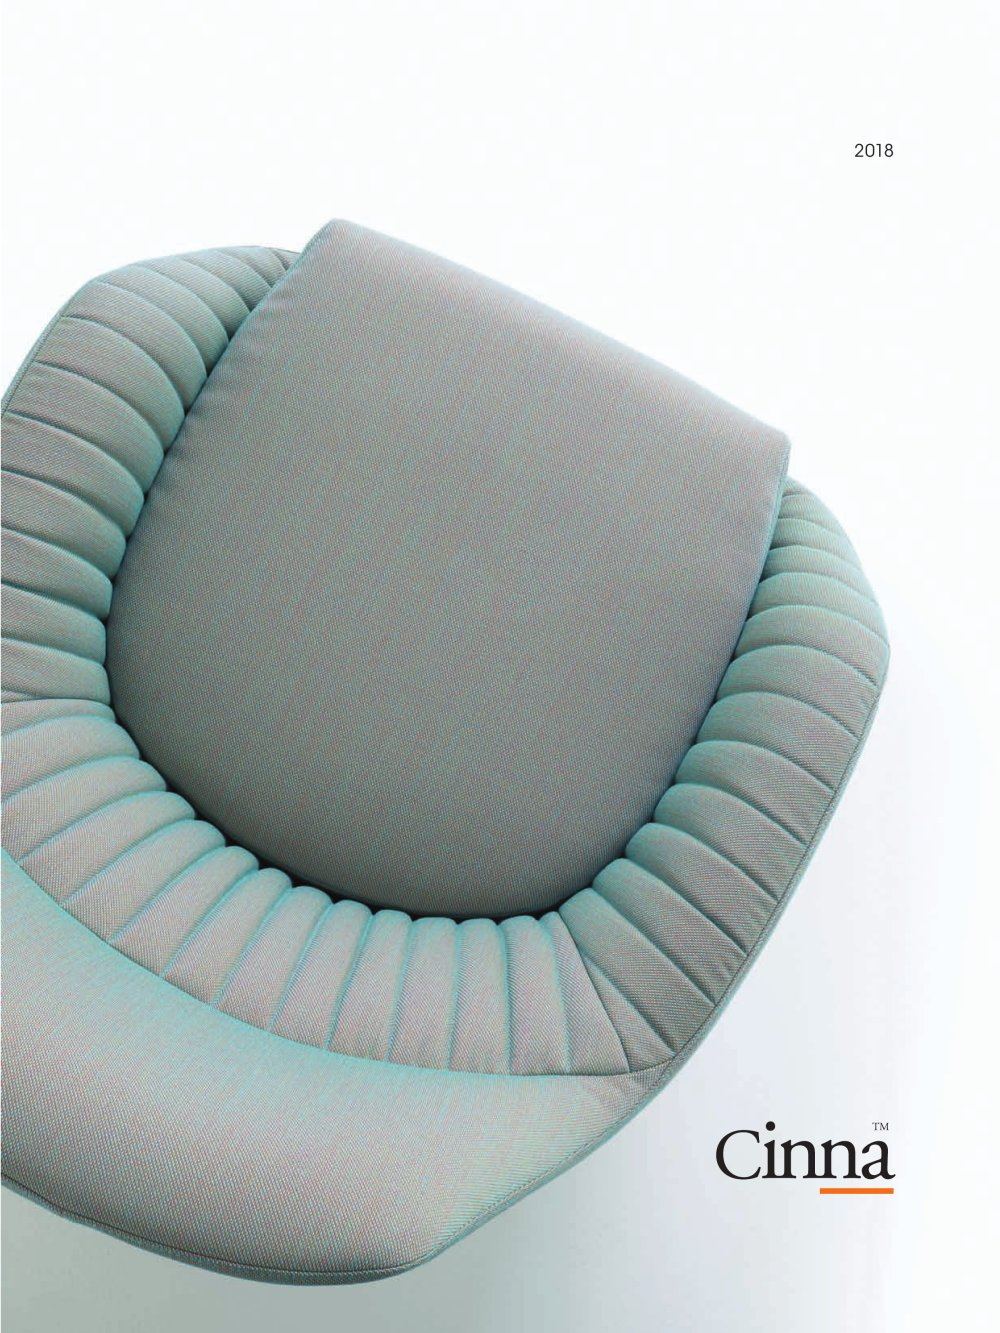 CINNA Catalogue CINNA Catalogue PDF Documentation Brochure - Canape cinna cuir